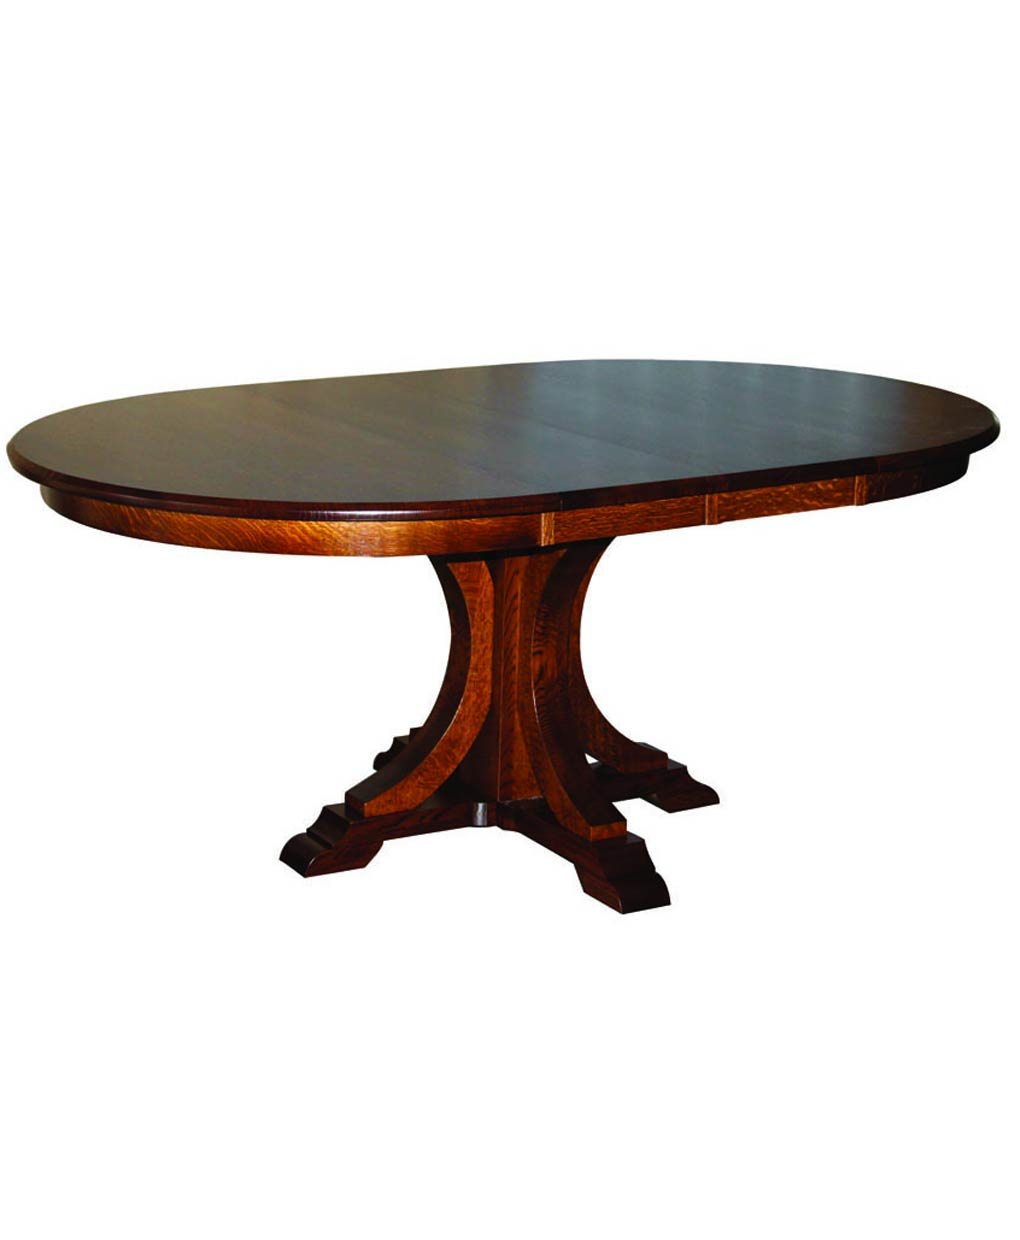 Buckeye pedestal table amish direct furniture for Pedestal table